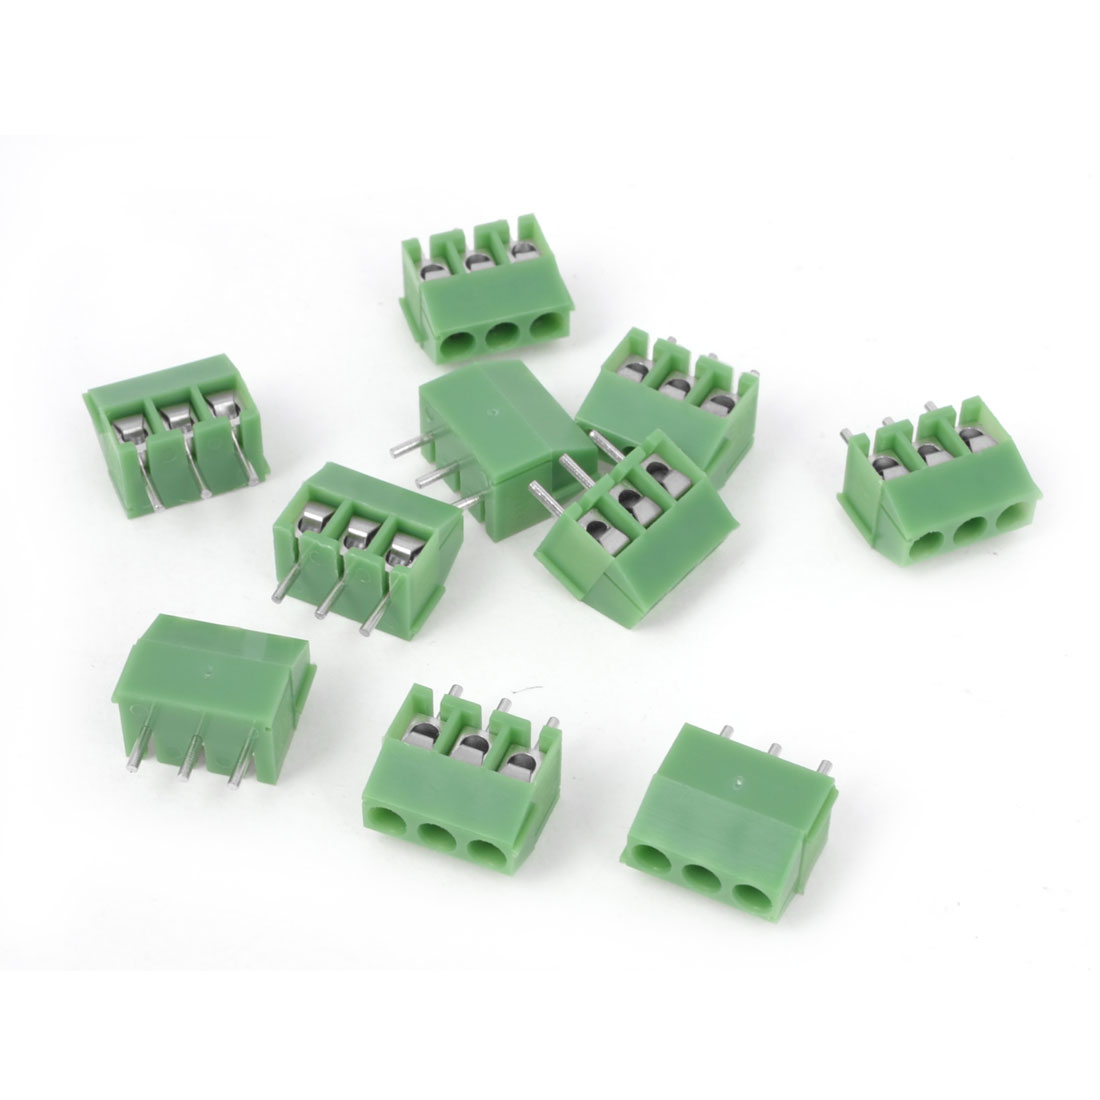 10 Pcs 300V 10A 3P Poles 3.5mm Pitch PCB Screw Terminal Block Connector Green